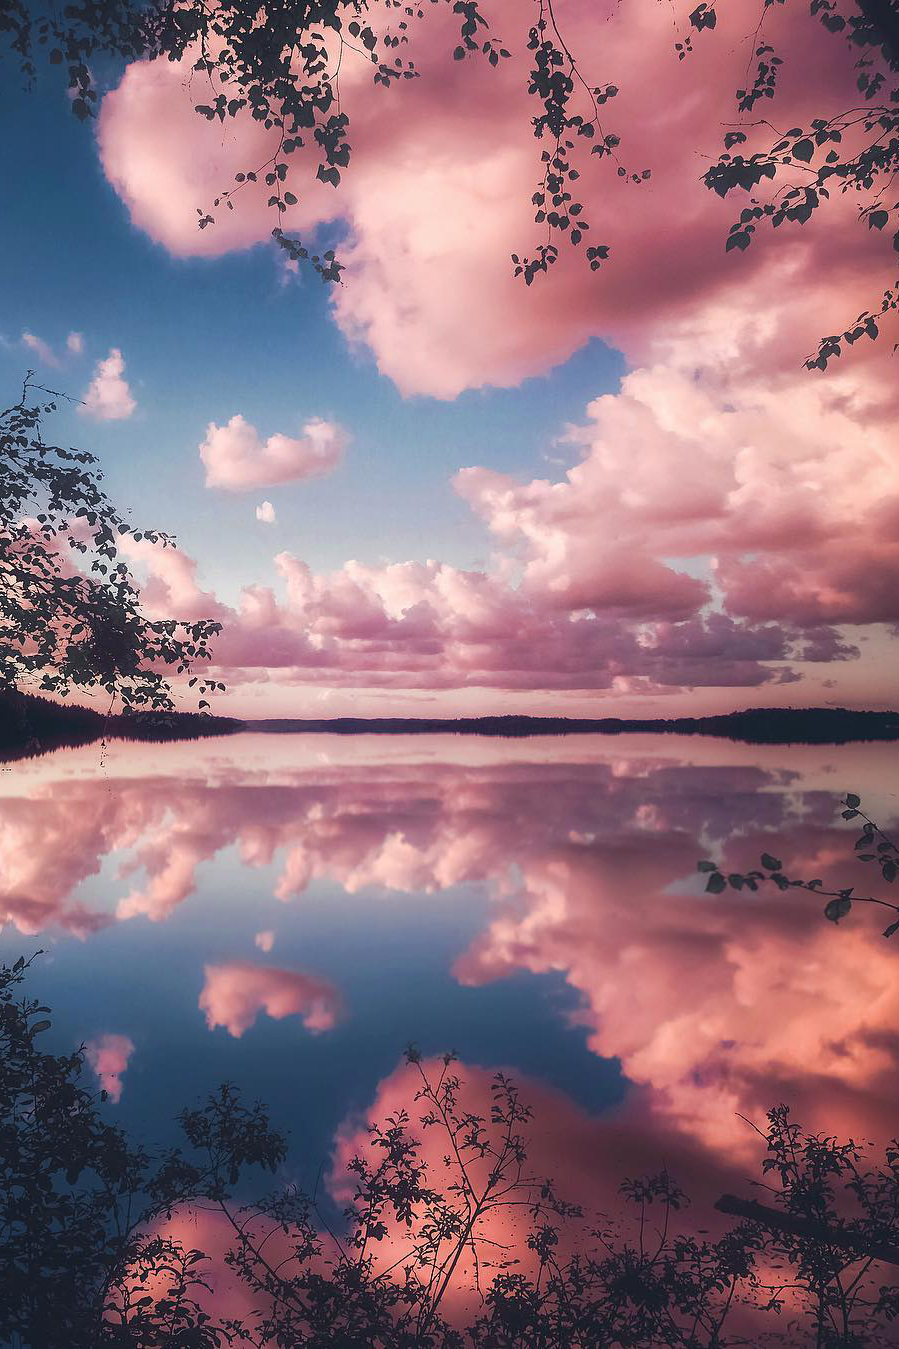 bddcdedfcee-happy-pink-clouds-wallpaper-wp400475-1